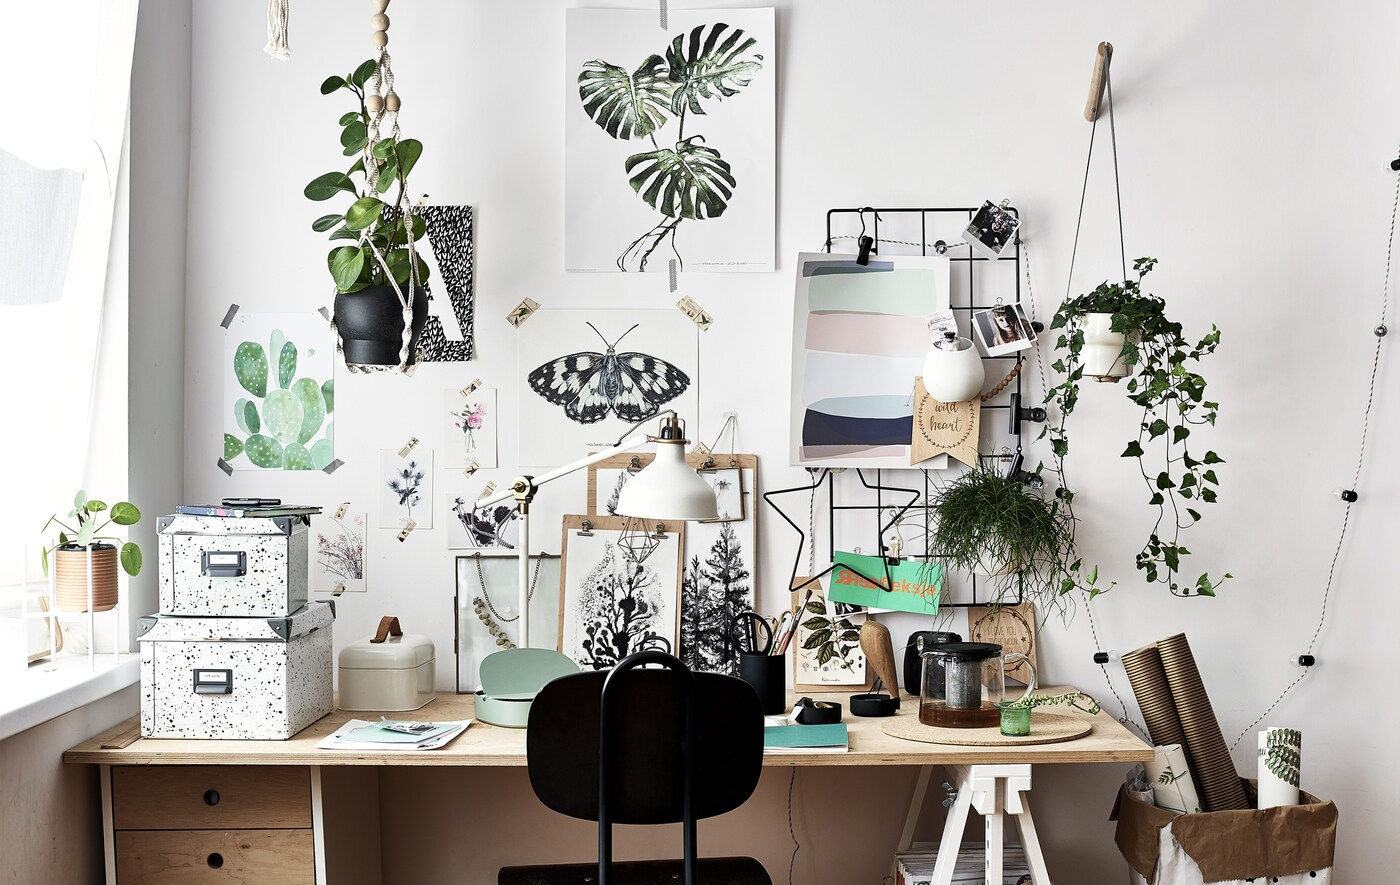 Artwork and inspiration displayed on a wall above a wooden desk and black chair.